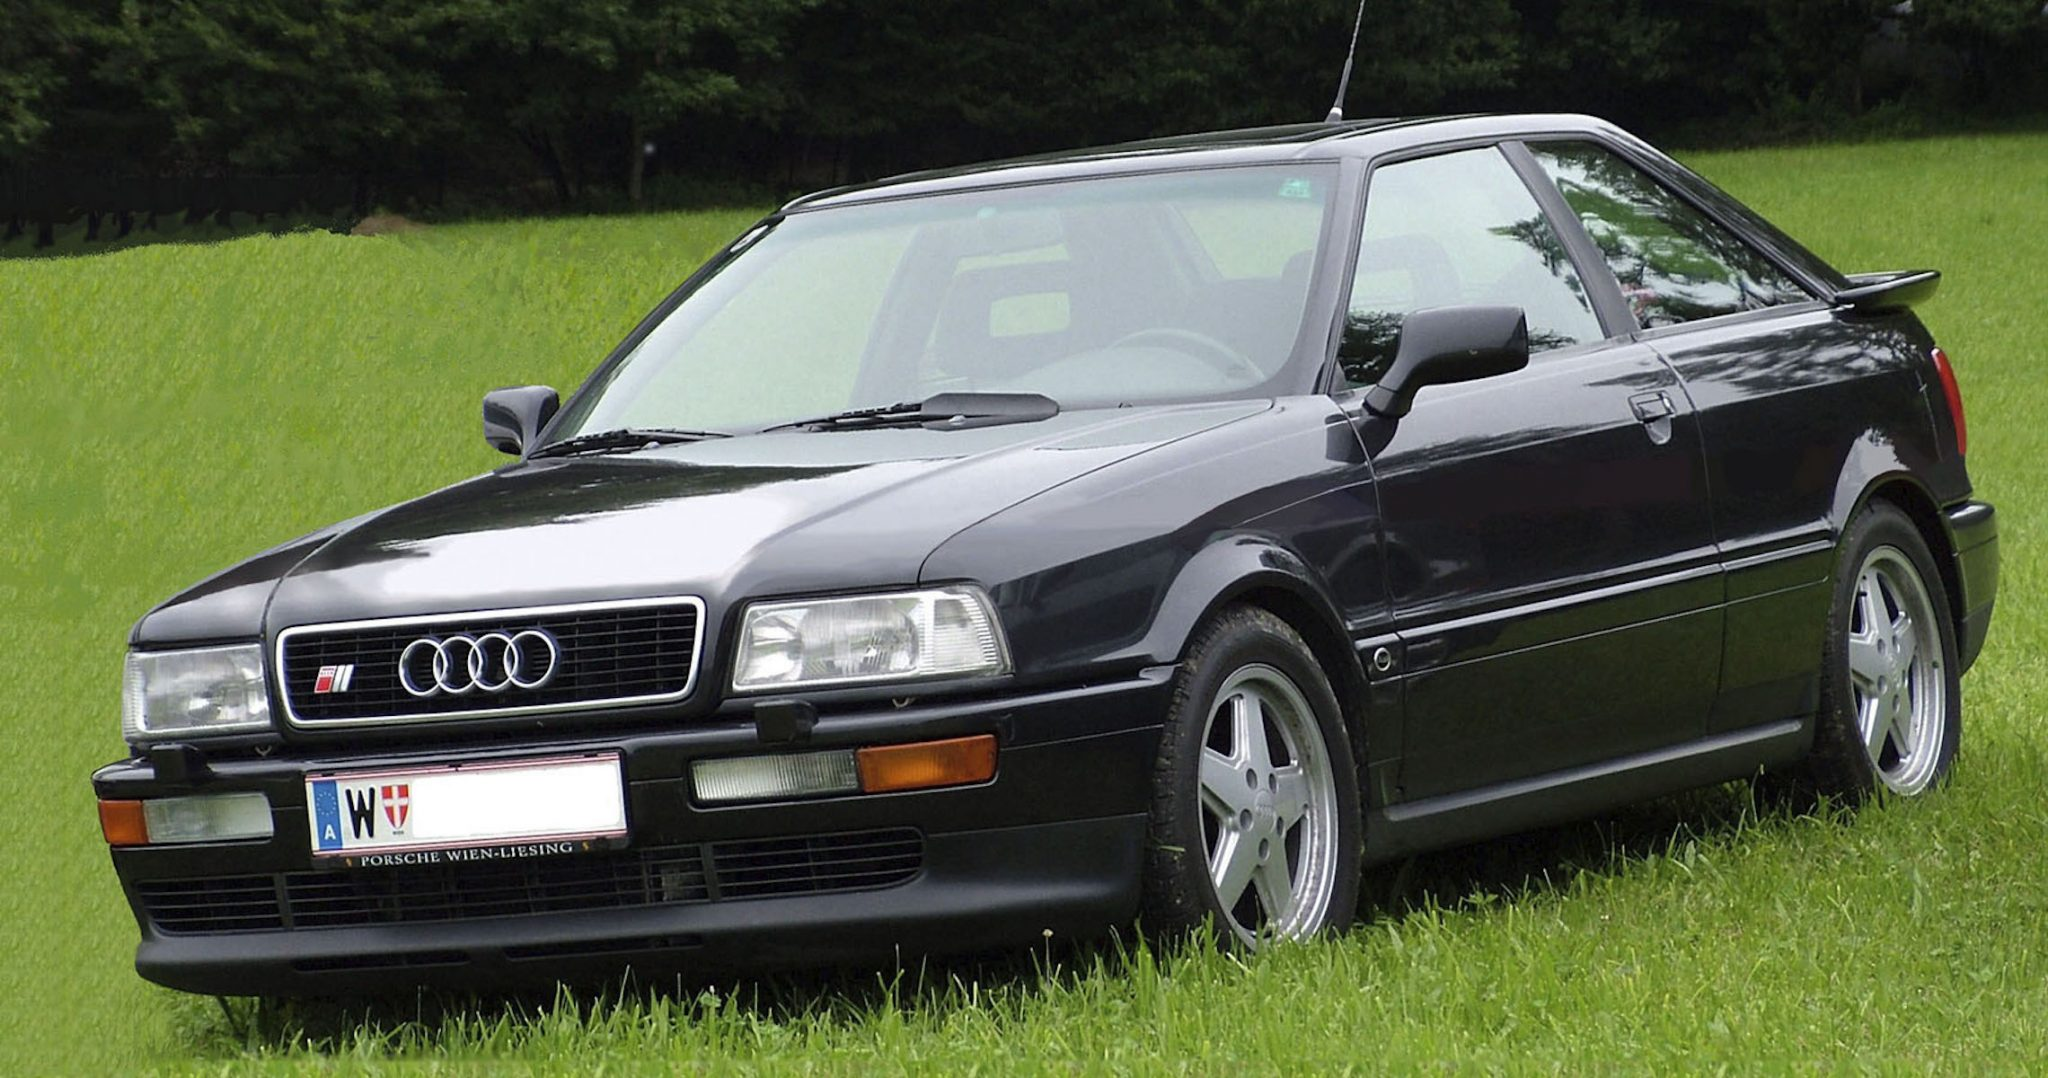 A side view of a black 1990 Audi S2 Coupe parked in the grass